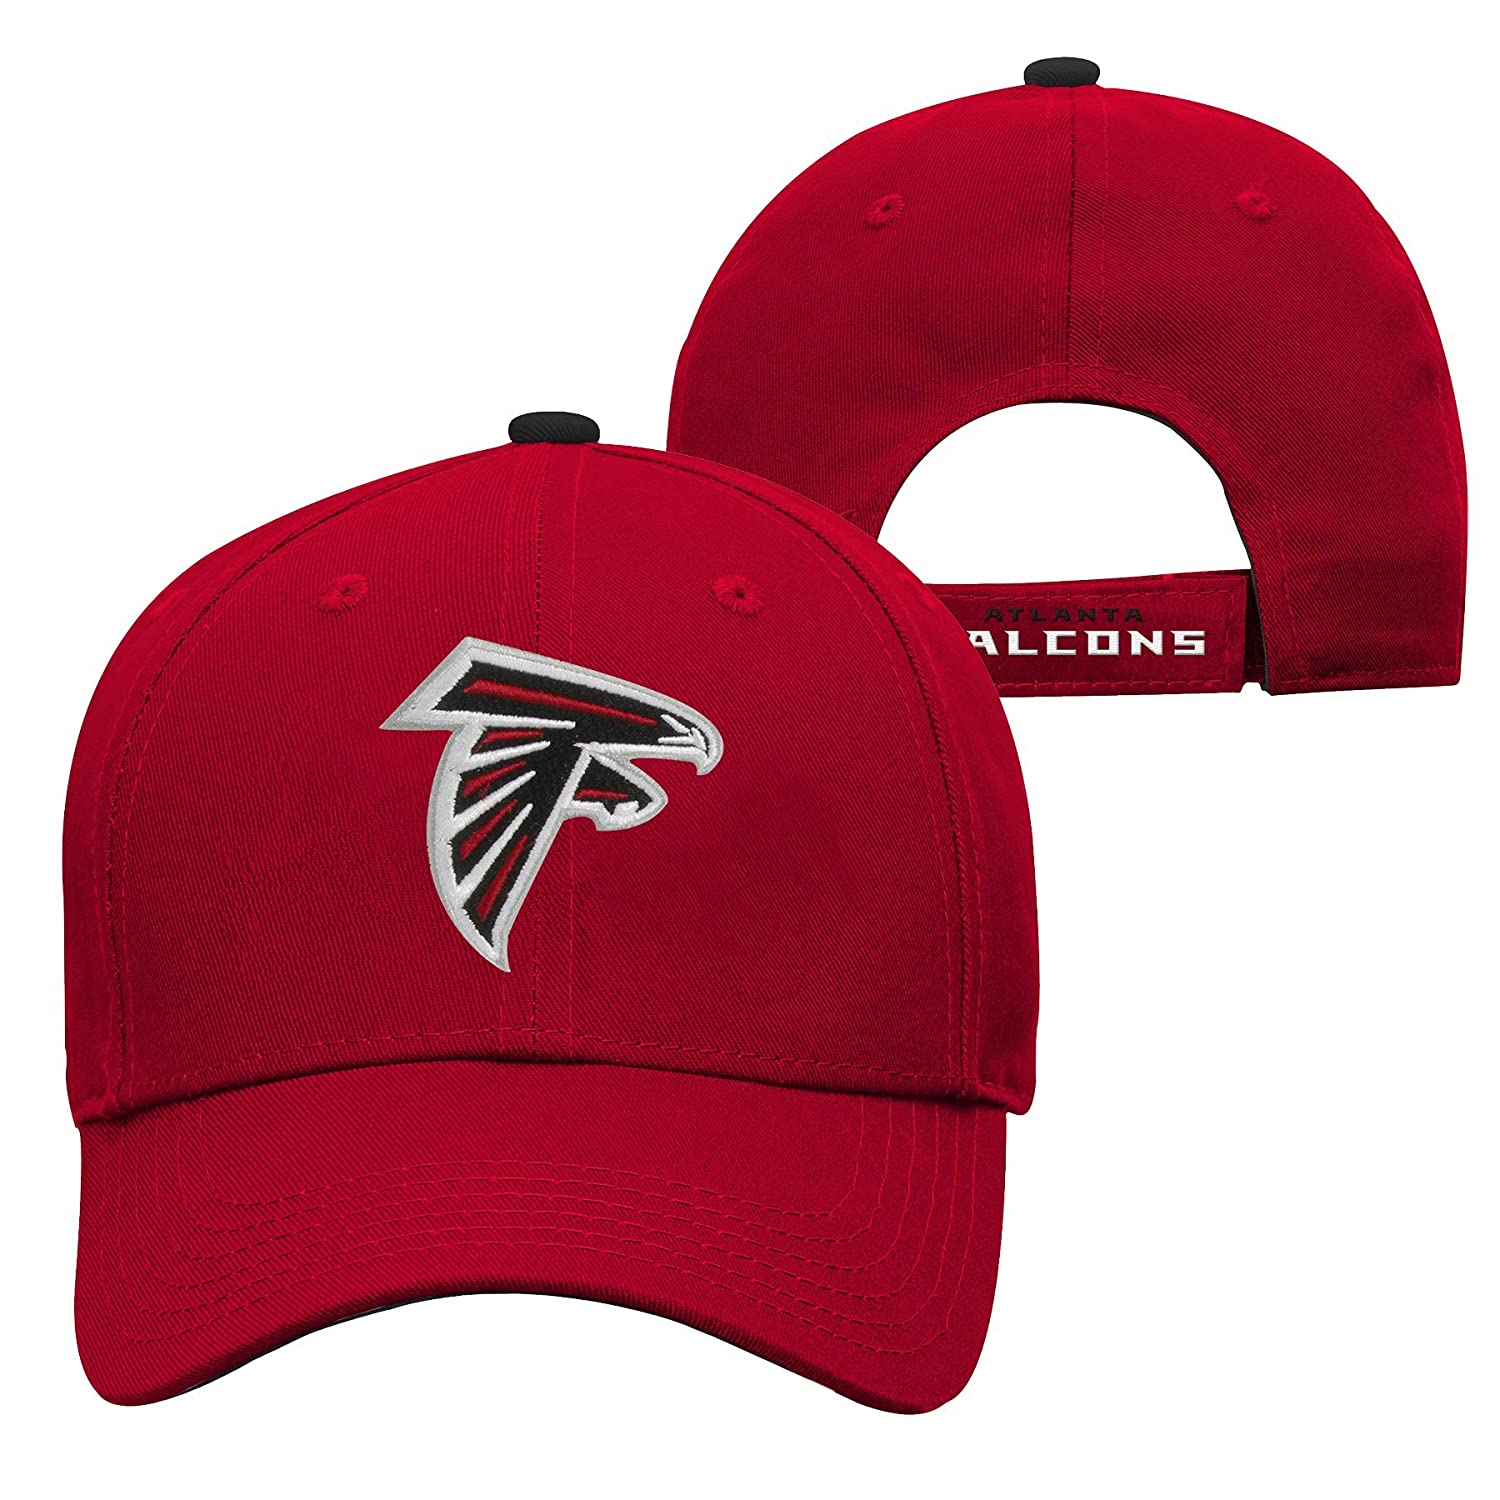 Youth One Size Team Color NFL Atlanta Falcons Youth Outerstuff Structured Adjustable Hat